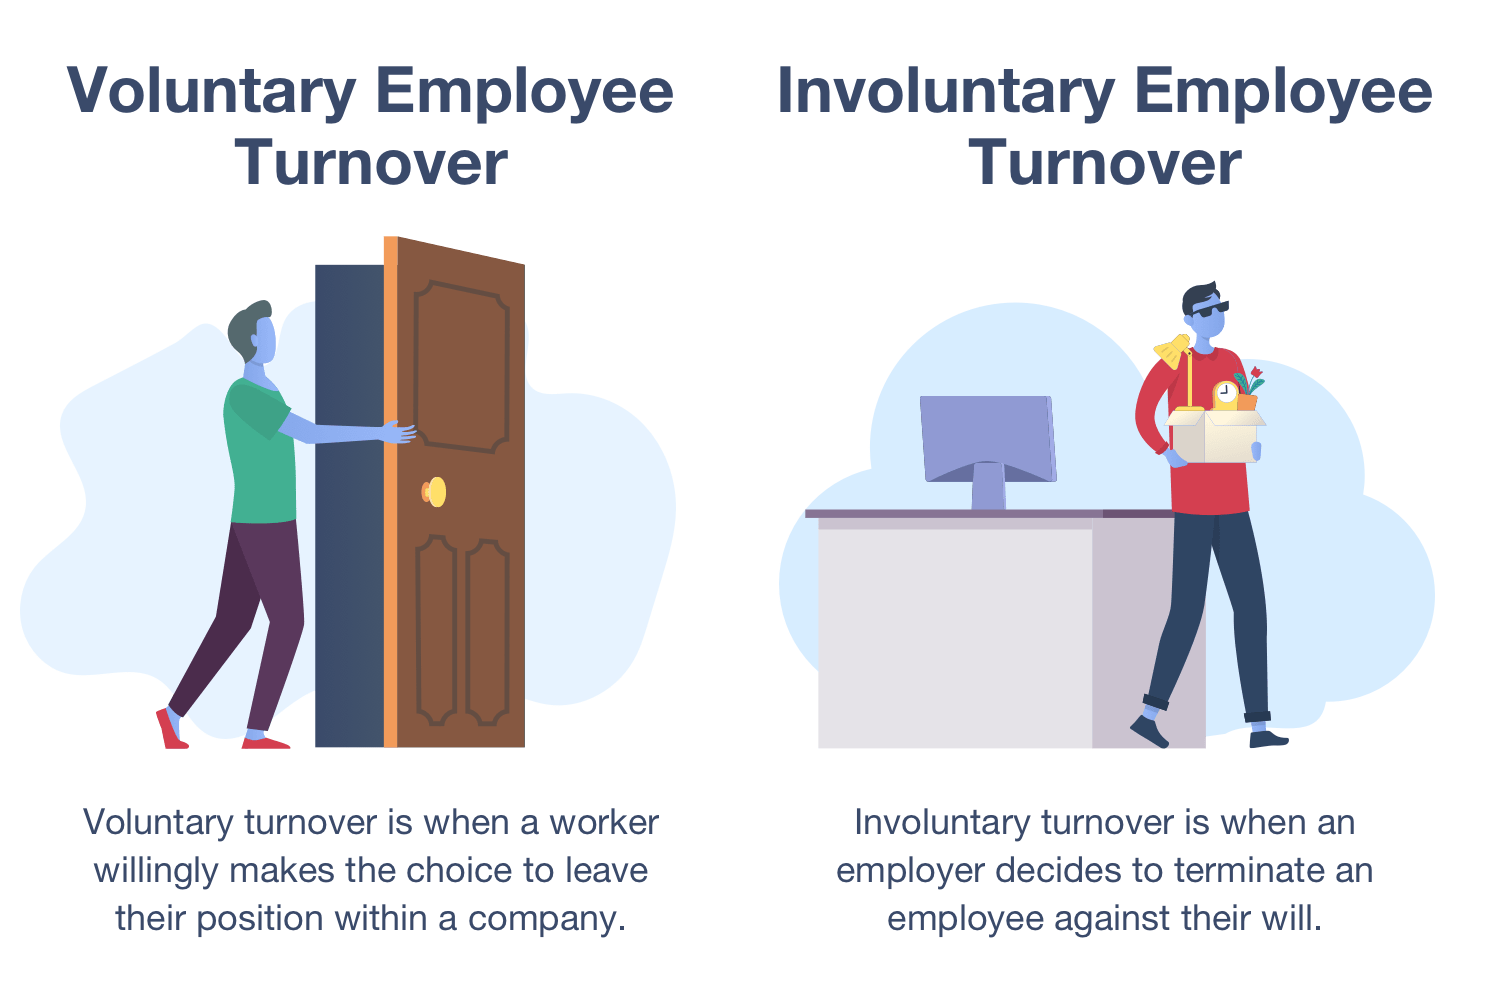 Turnover types